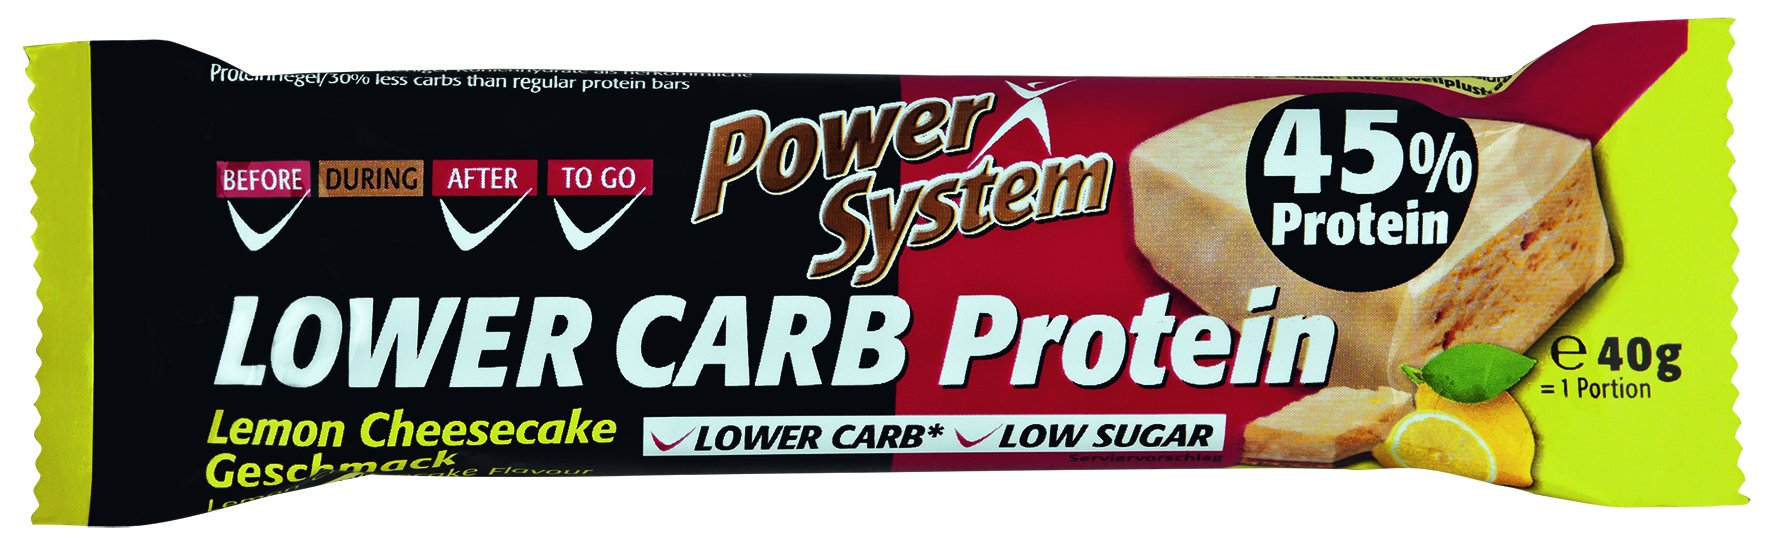 Power System LOWER CARB Lemon Cheesecake Bar with 45% Protein 40g